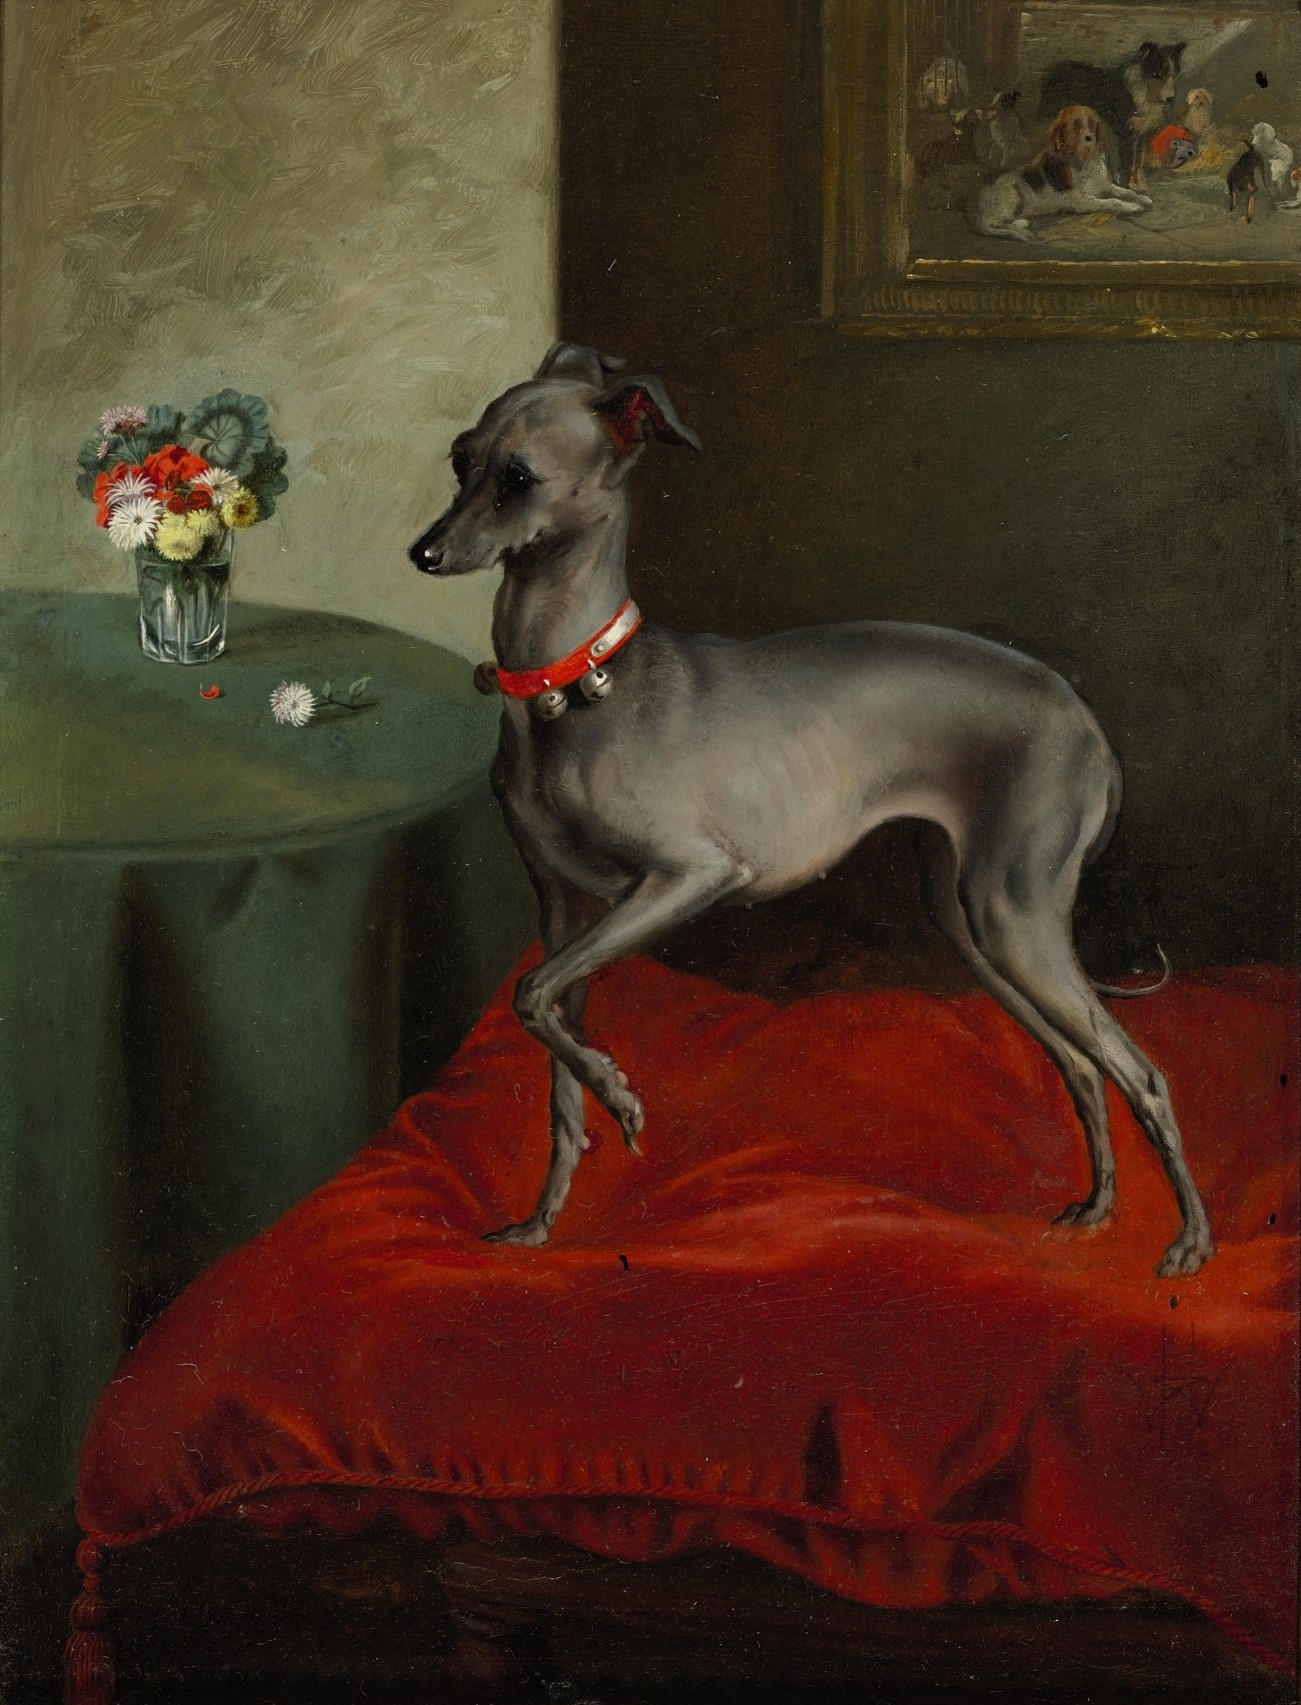 Brooke Astor's Dog Art go under the hammer at Sotheby's New York, September 24 & 25 2012